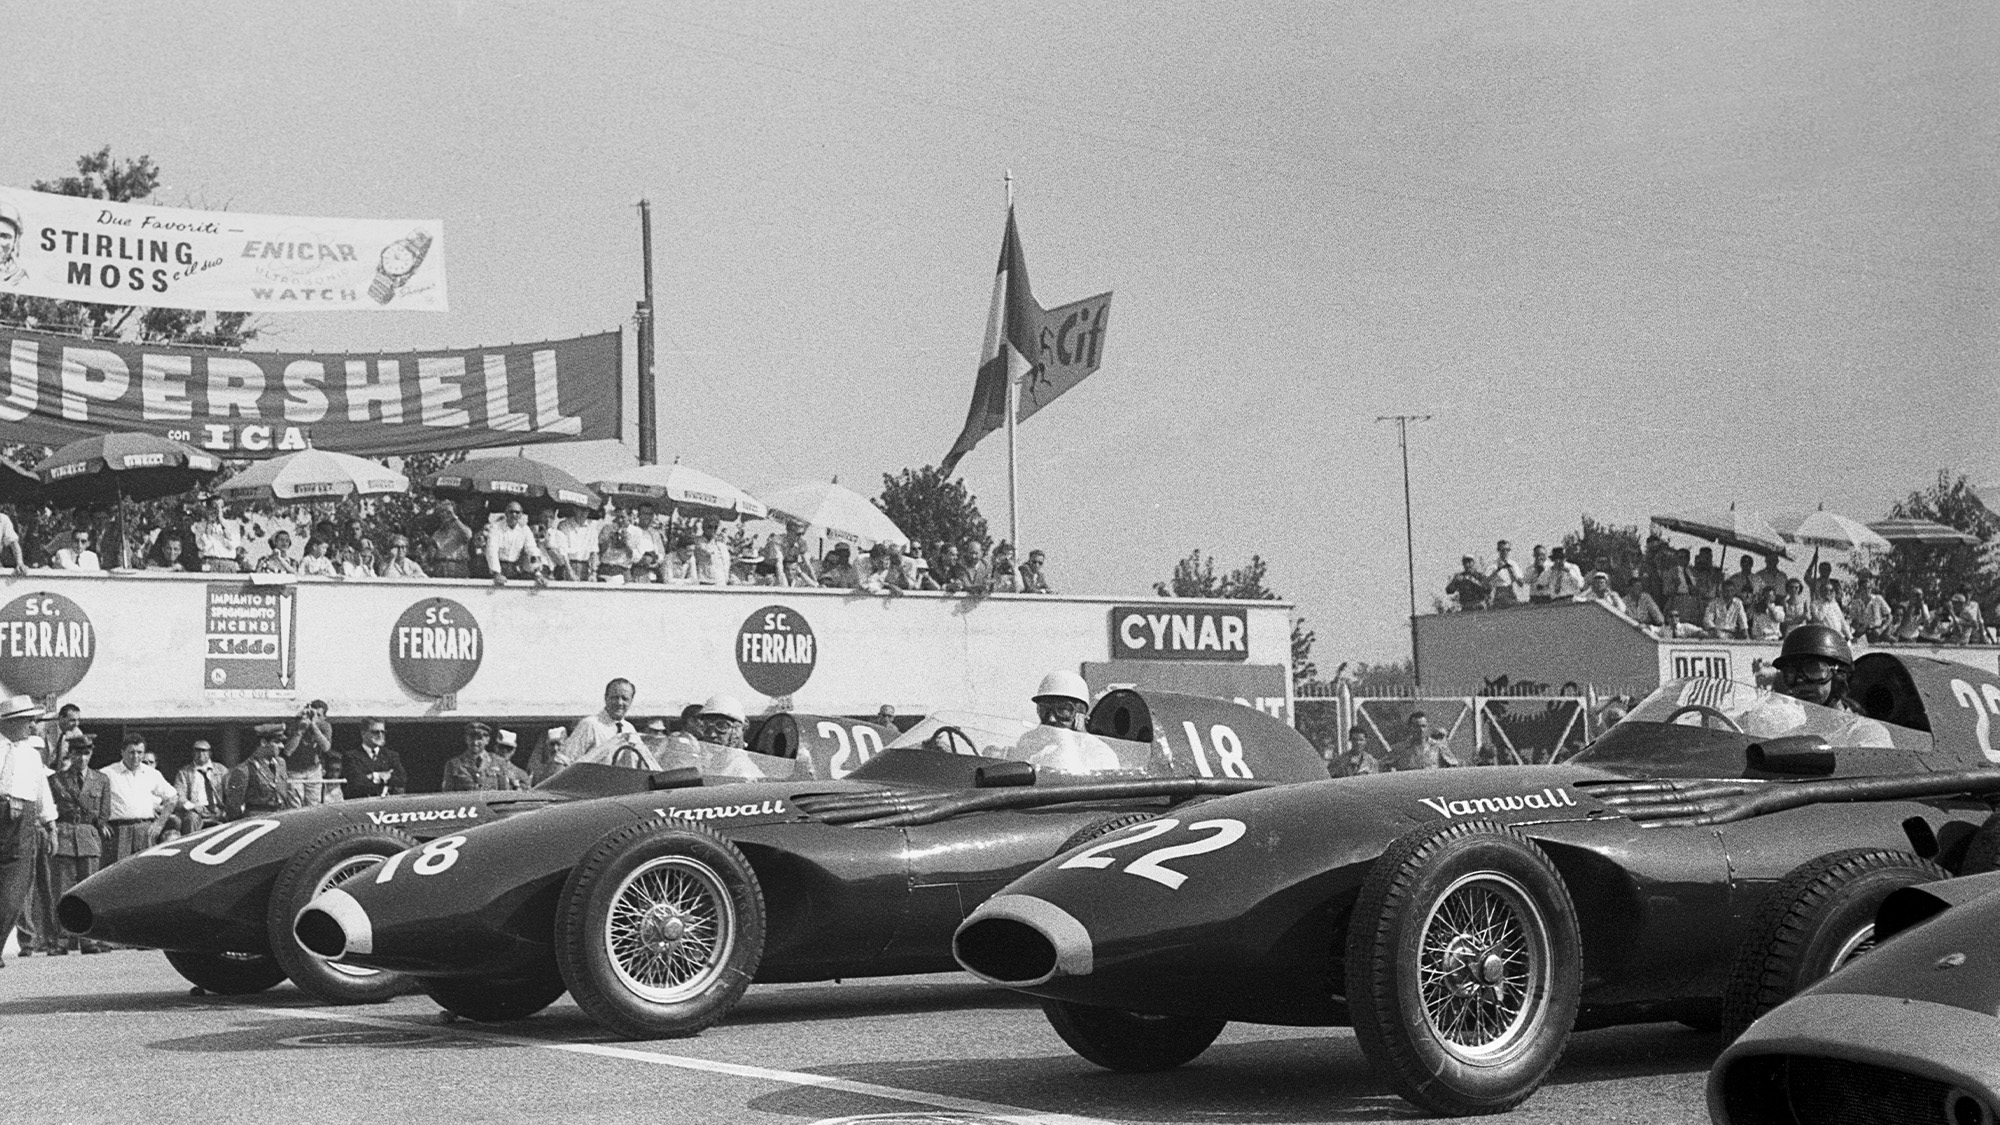 Tony Brooks, Stirling Moss and Stuart Lewis Evans on the front row of the grid at monza ahead of the 1957 Italian Grand Prix